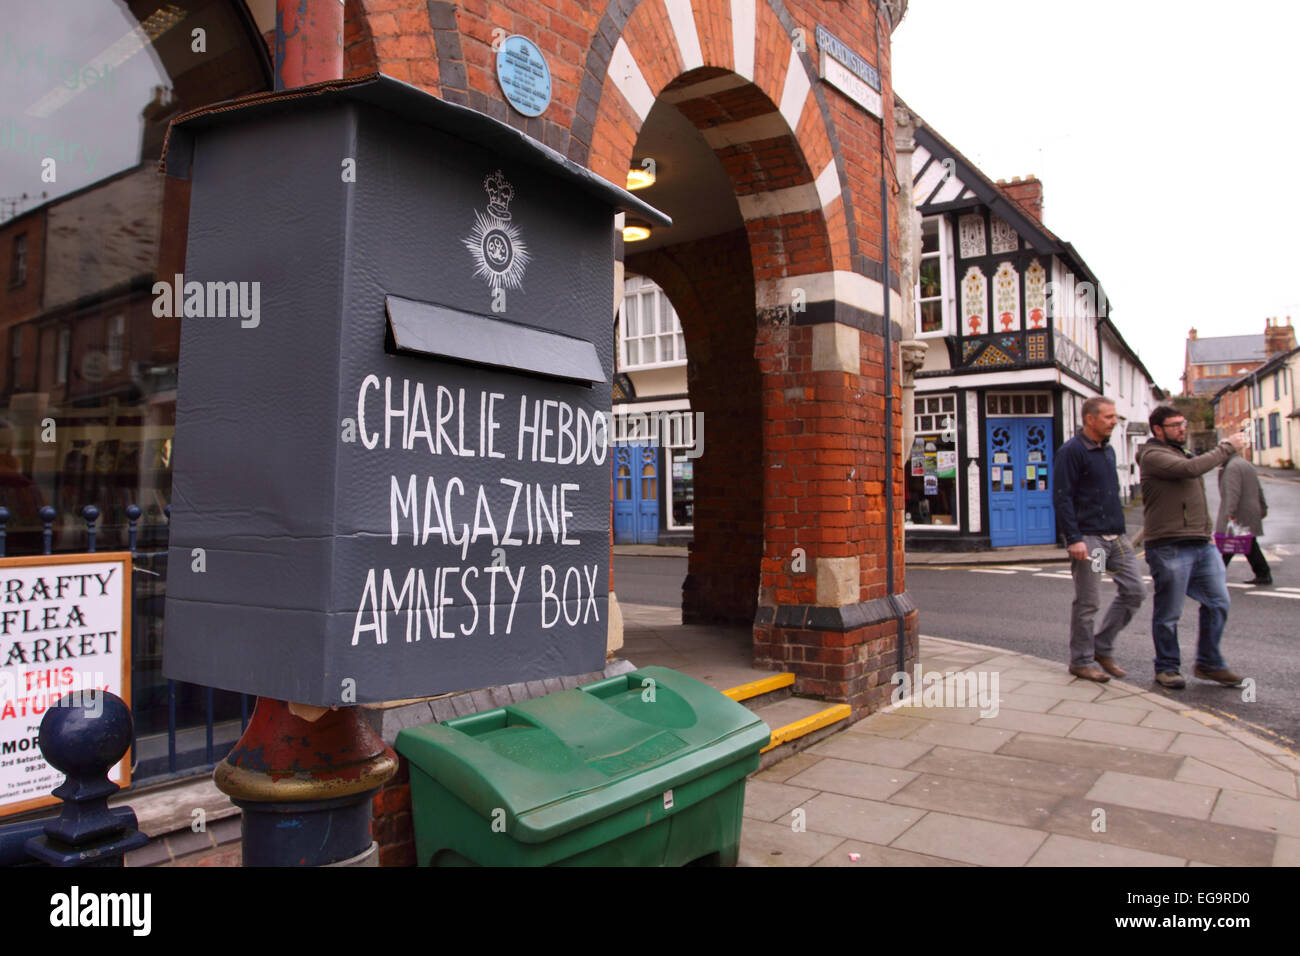 Presteigne, Powys, Wales, UK. 20th February, 2015. A spoof Charlie Hebdo amnesty box has appeared in the mid Wales - Stock Image